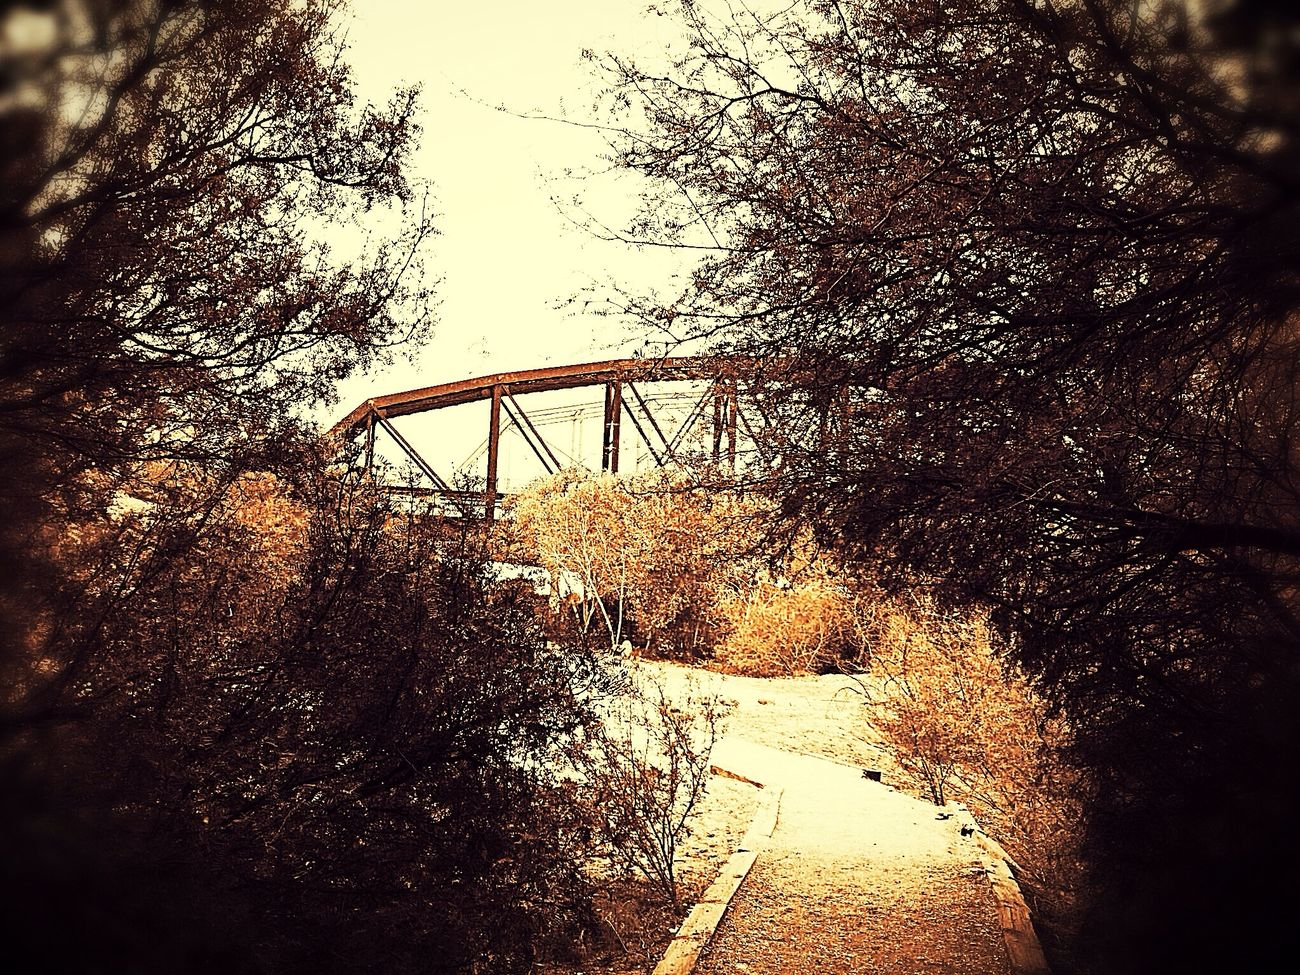 Ocean To Ocean Bridge Arizona Walking Path Filters Sepia Nature Photography Nature Bridge - Man Made Structure IPhone Photography Outdoors At Peace With Myself  One Man Outside Photography Loving Nature